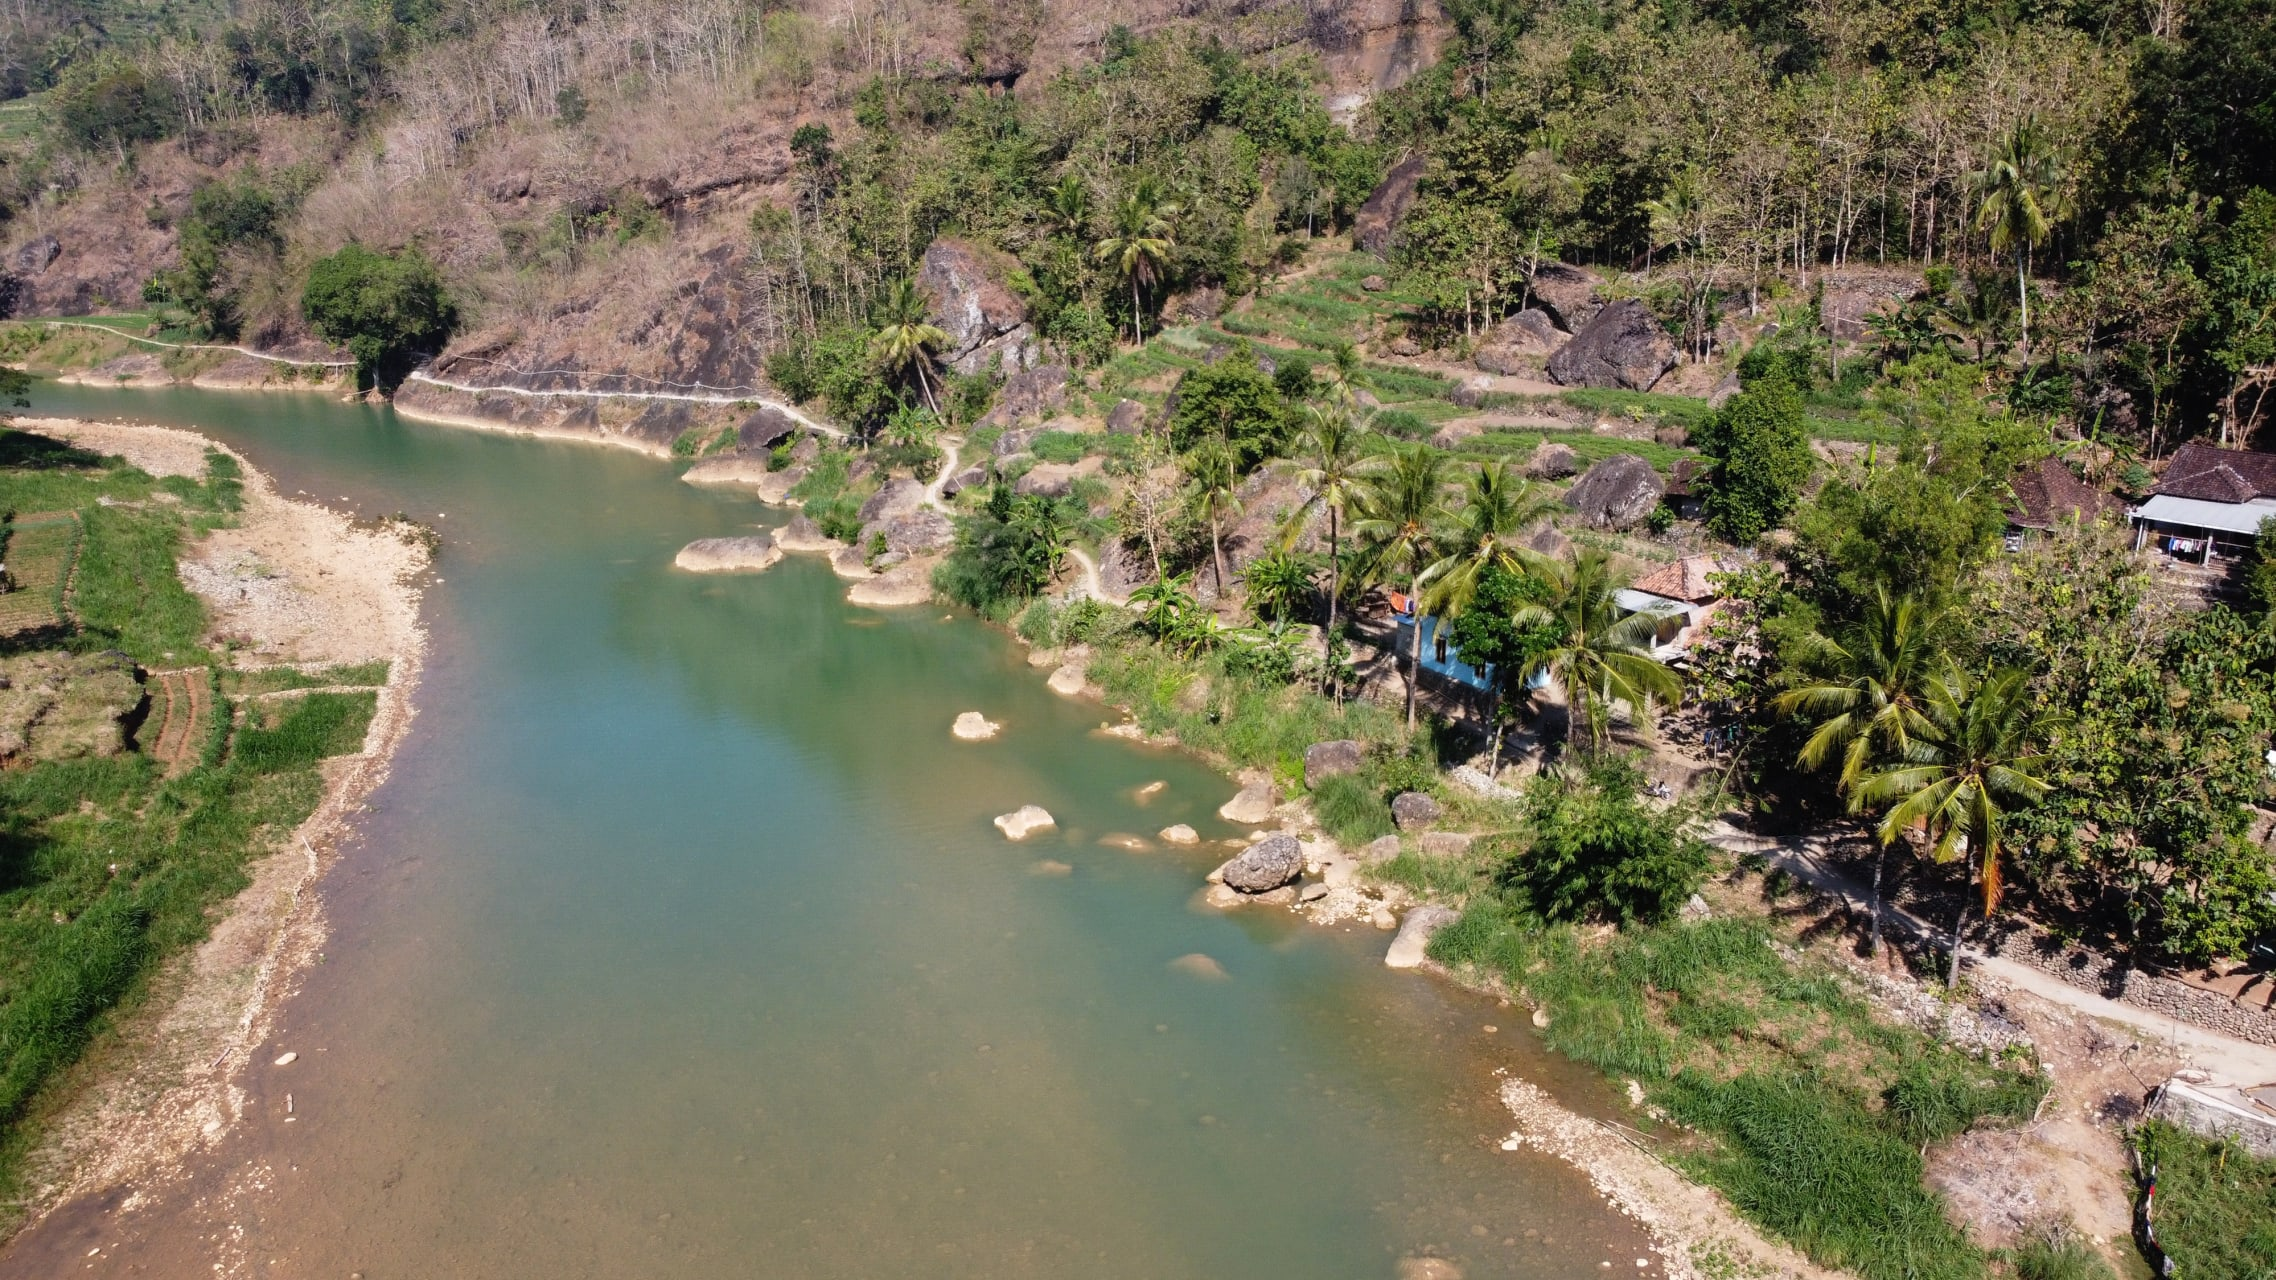 Yogyakarta - The Natural Beauty of the Oya River Valley Flanked by Karst Hills